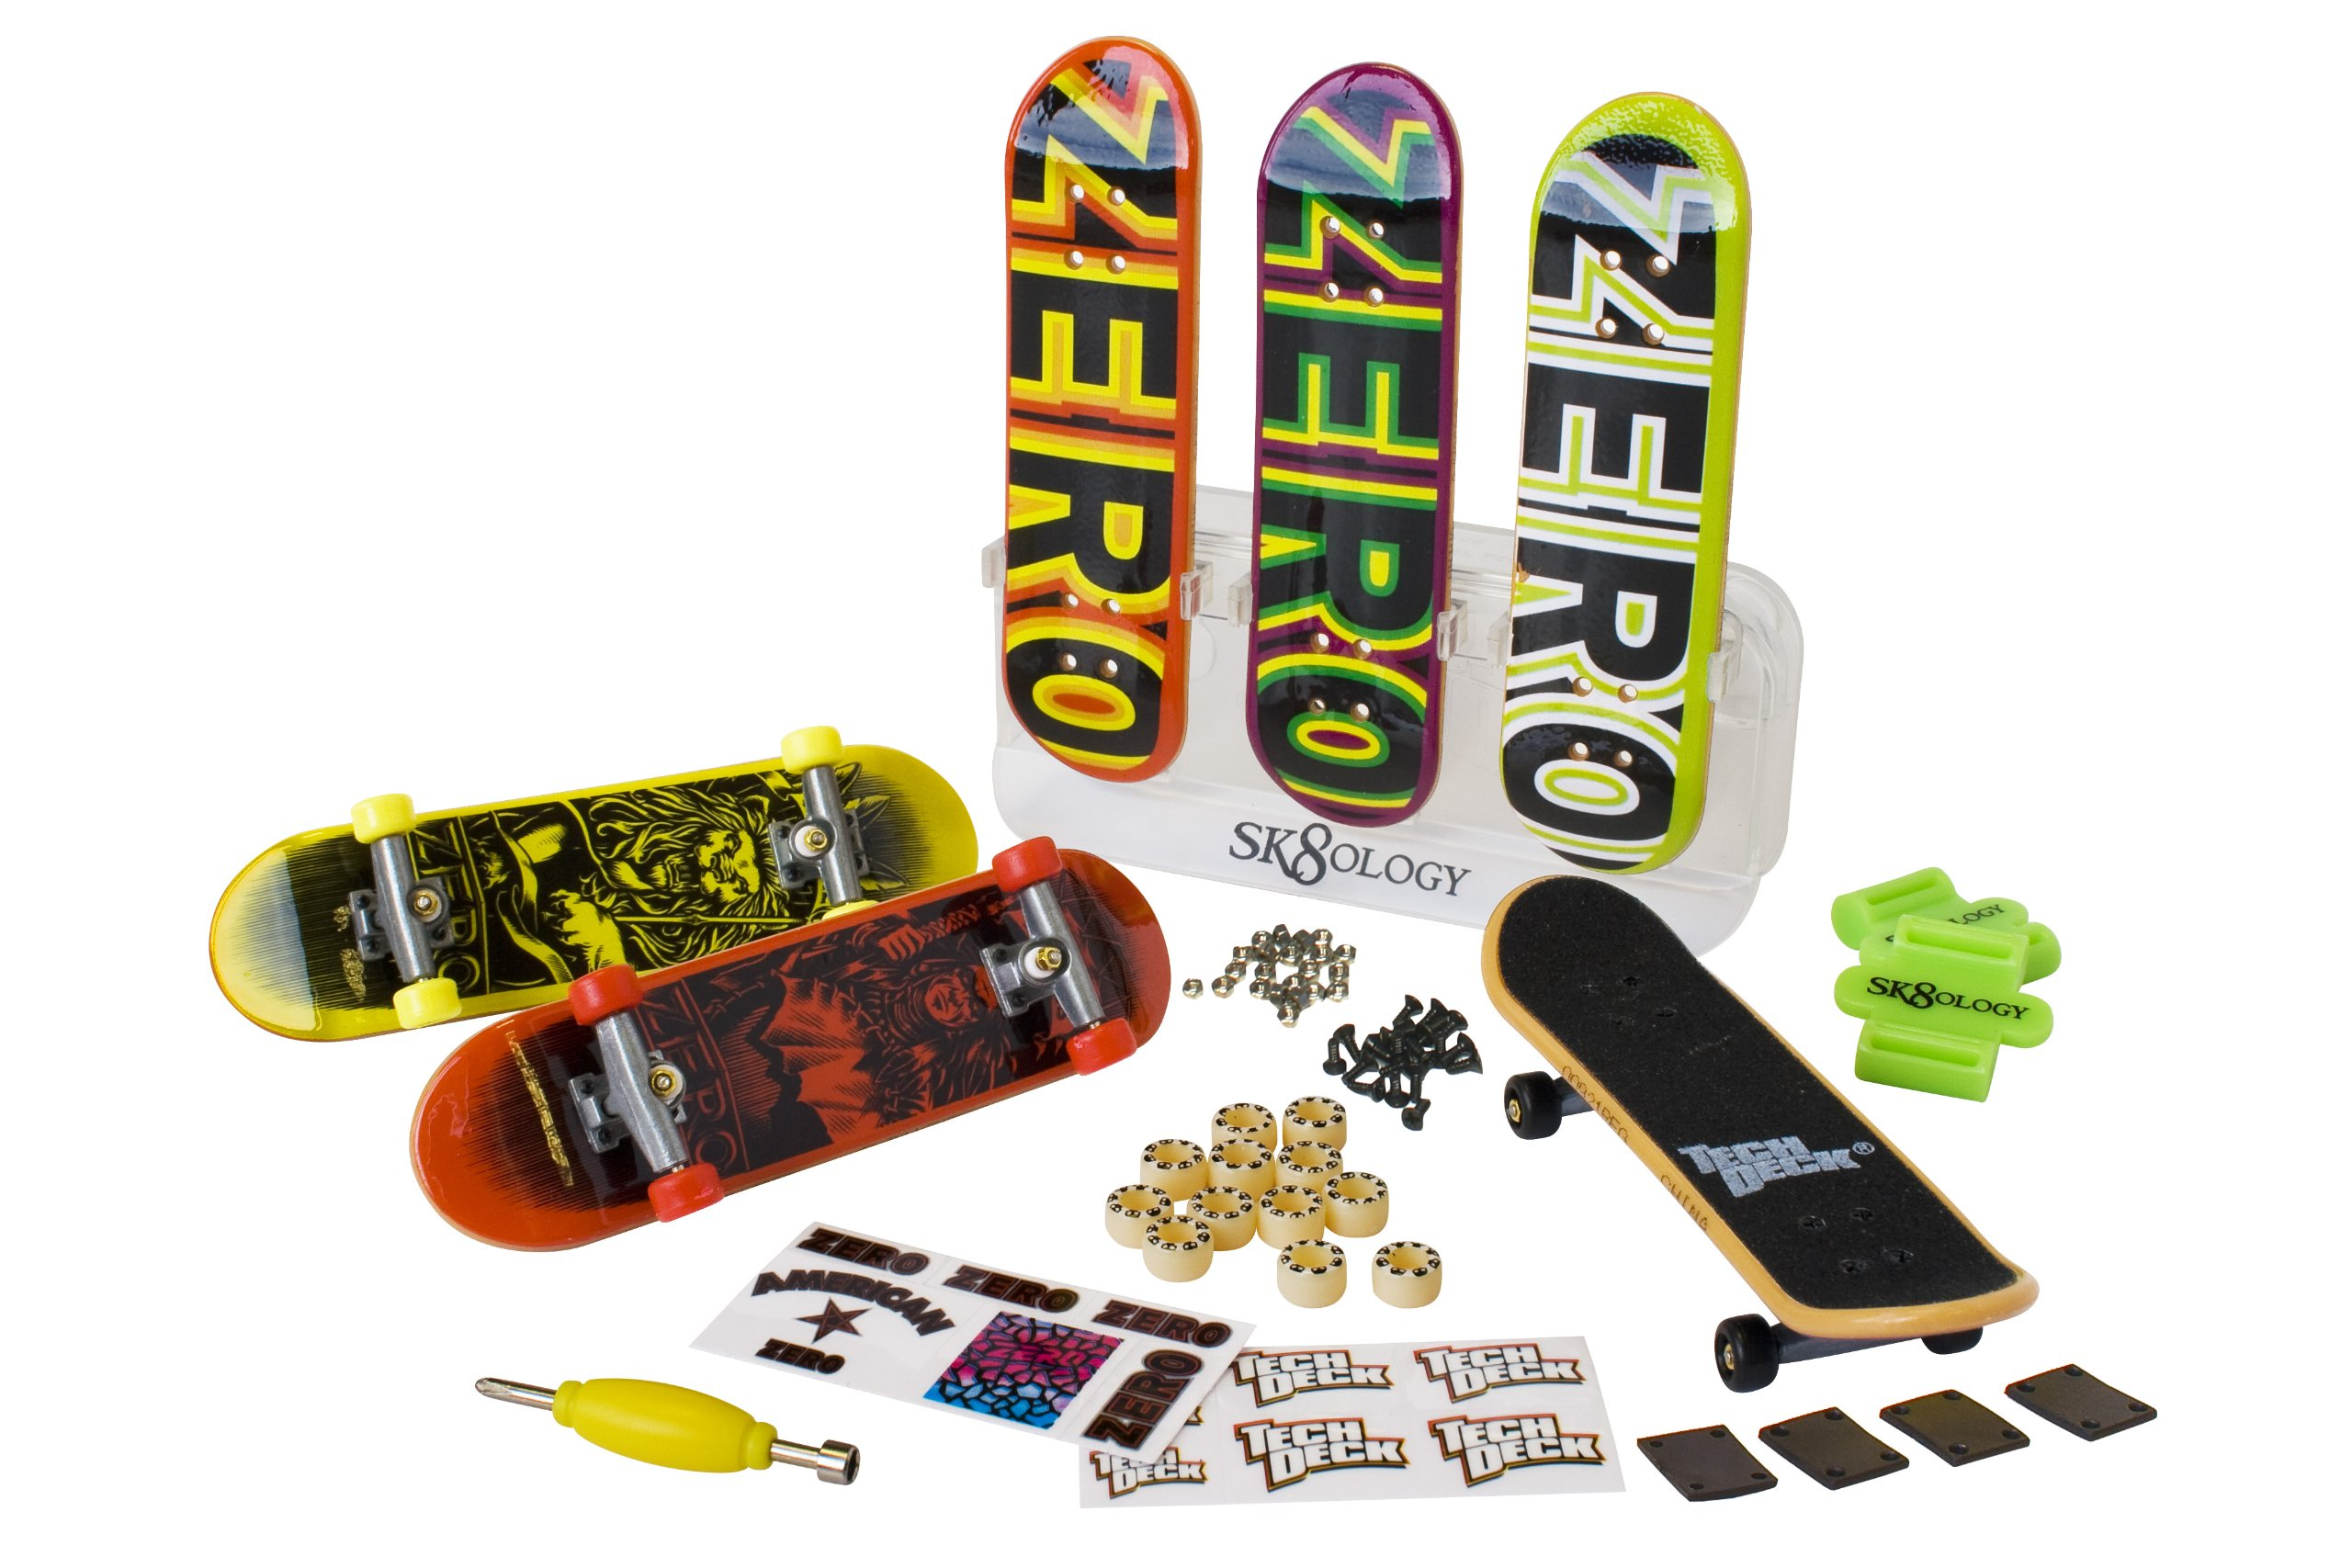 Tech Deck - SK8 Skate Shop Bonus Pack (Styles Vary) (Discontinued by manufacturer) by Spin Master (Image #3)